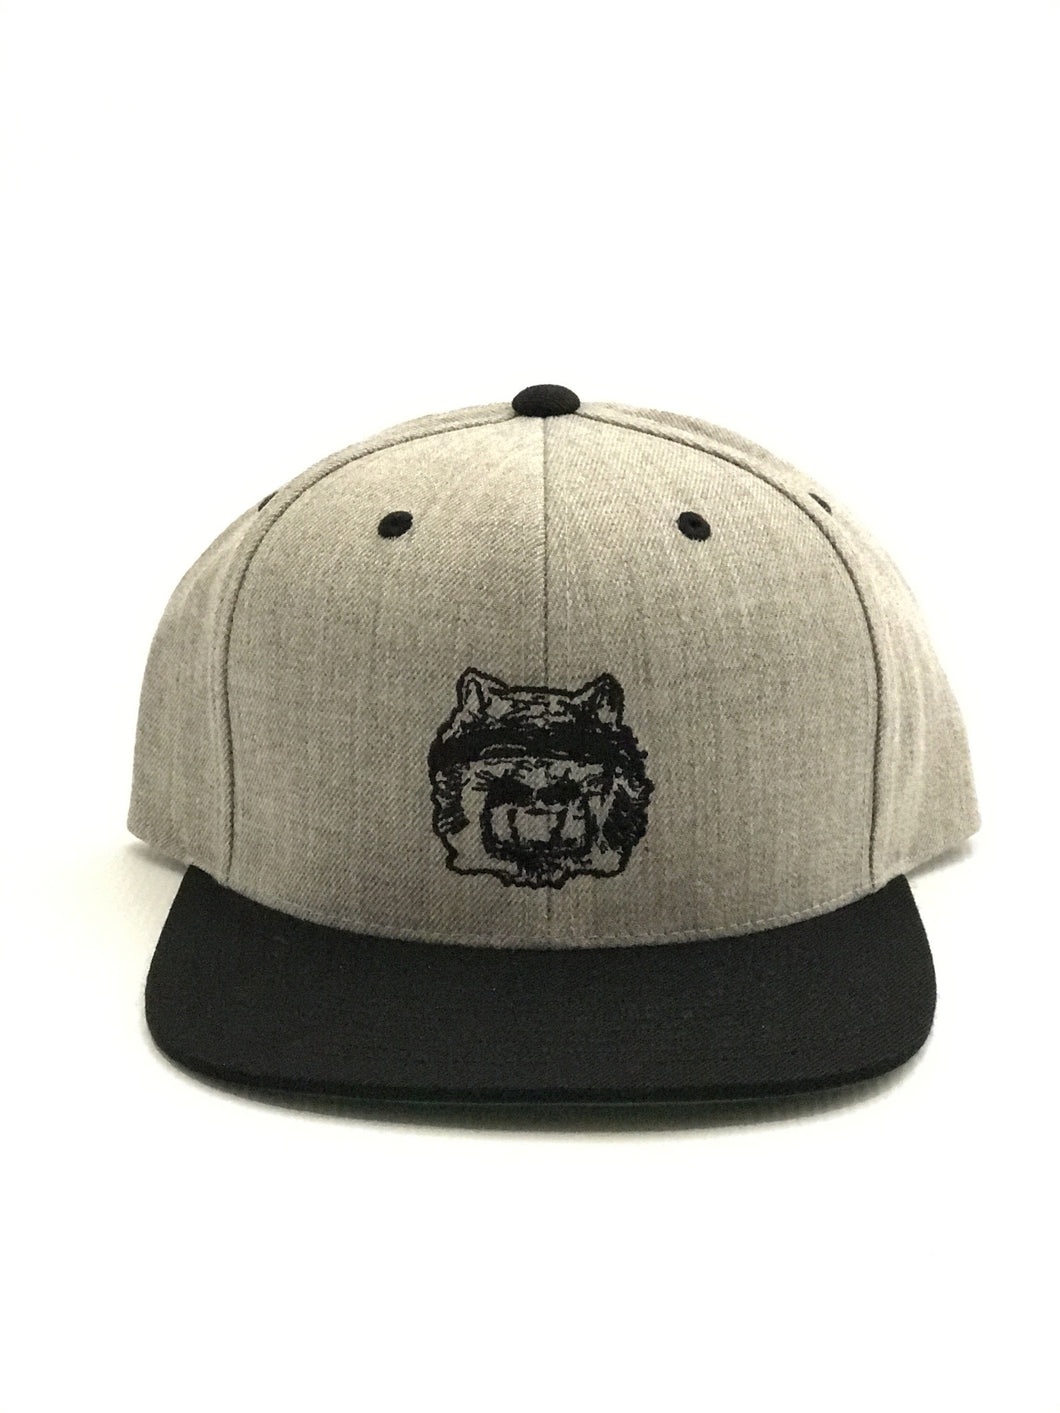 Blind Tiger Hat - Heather Black